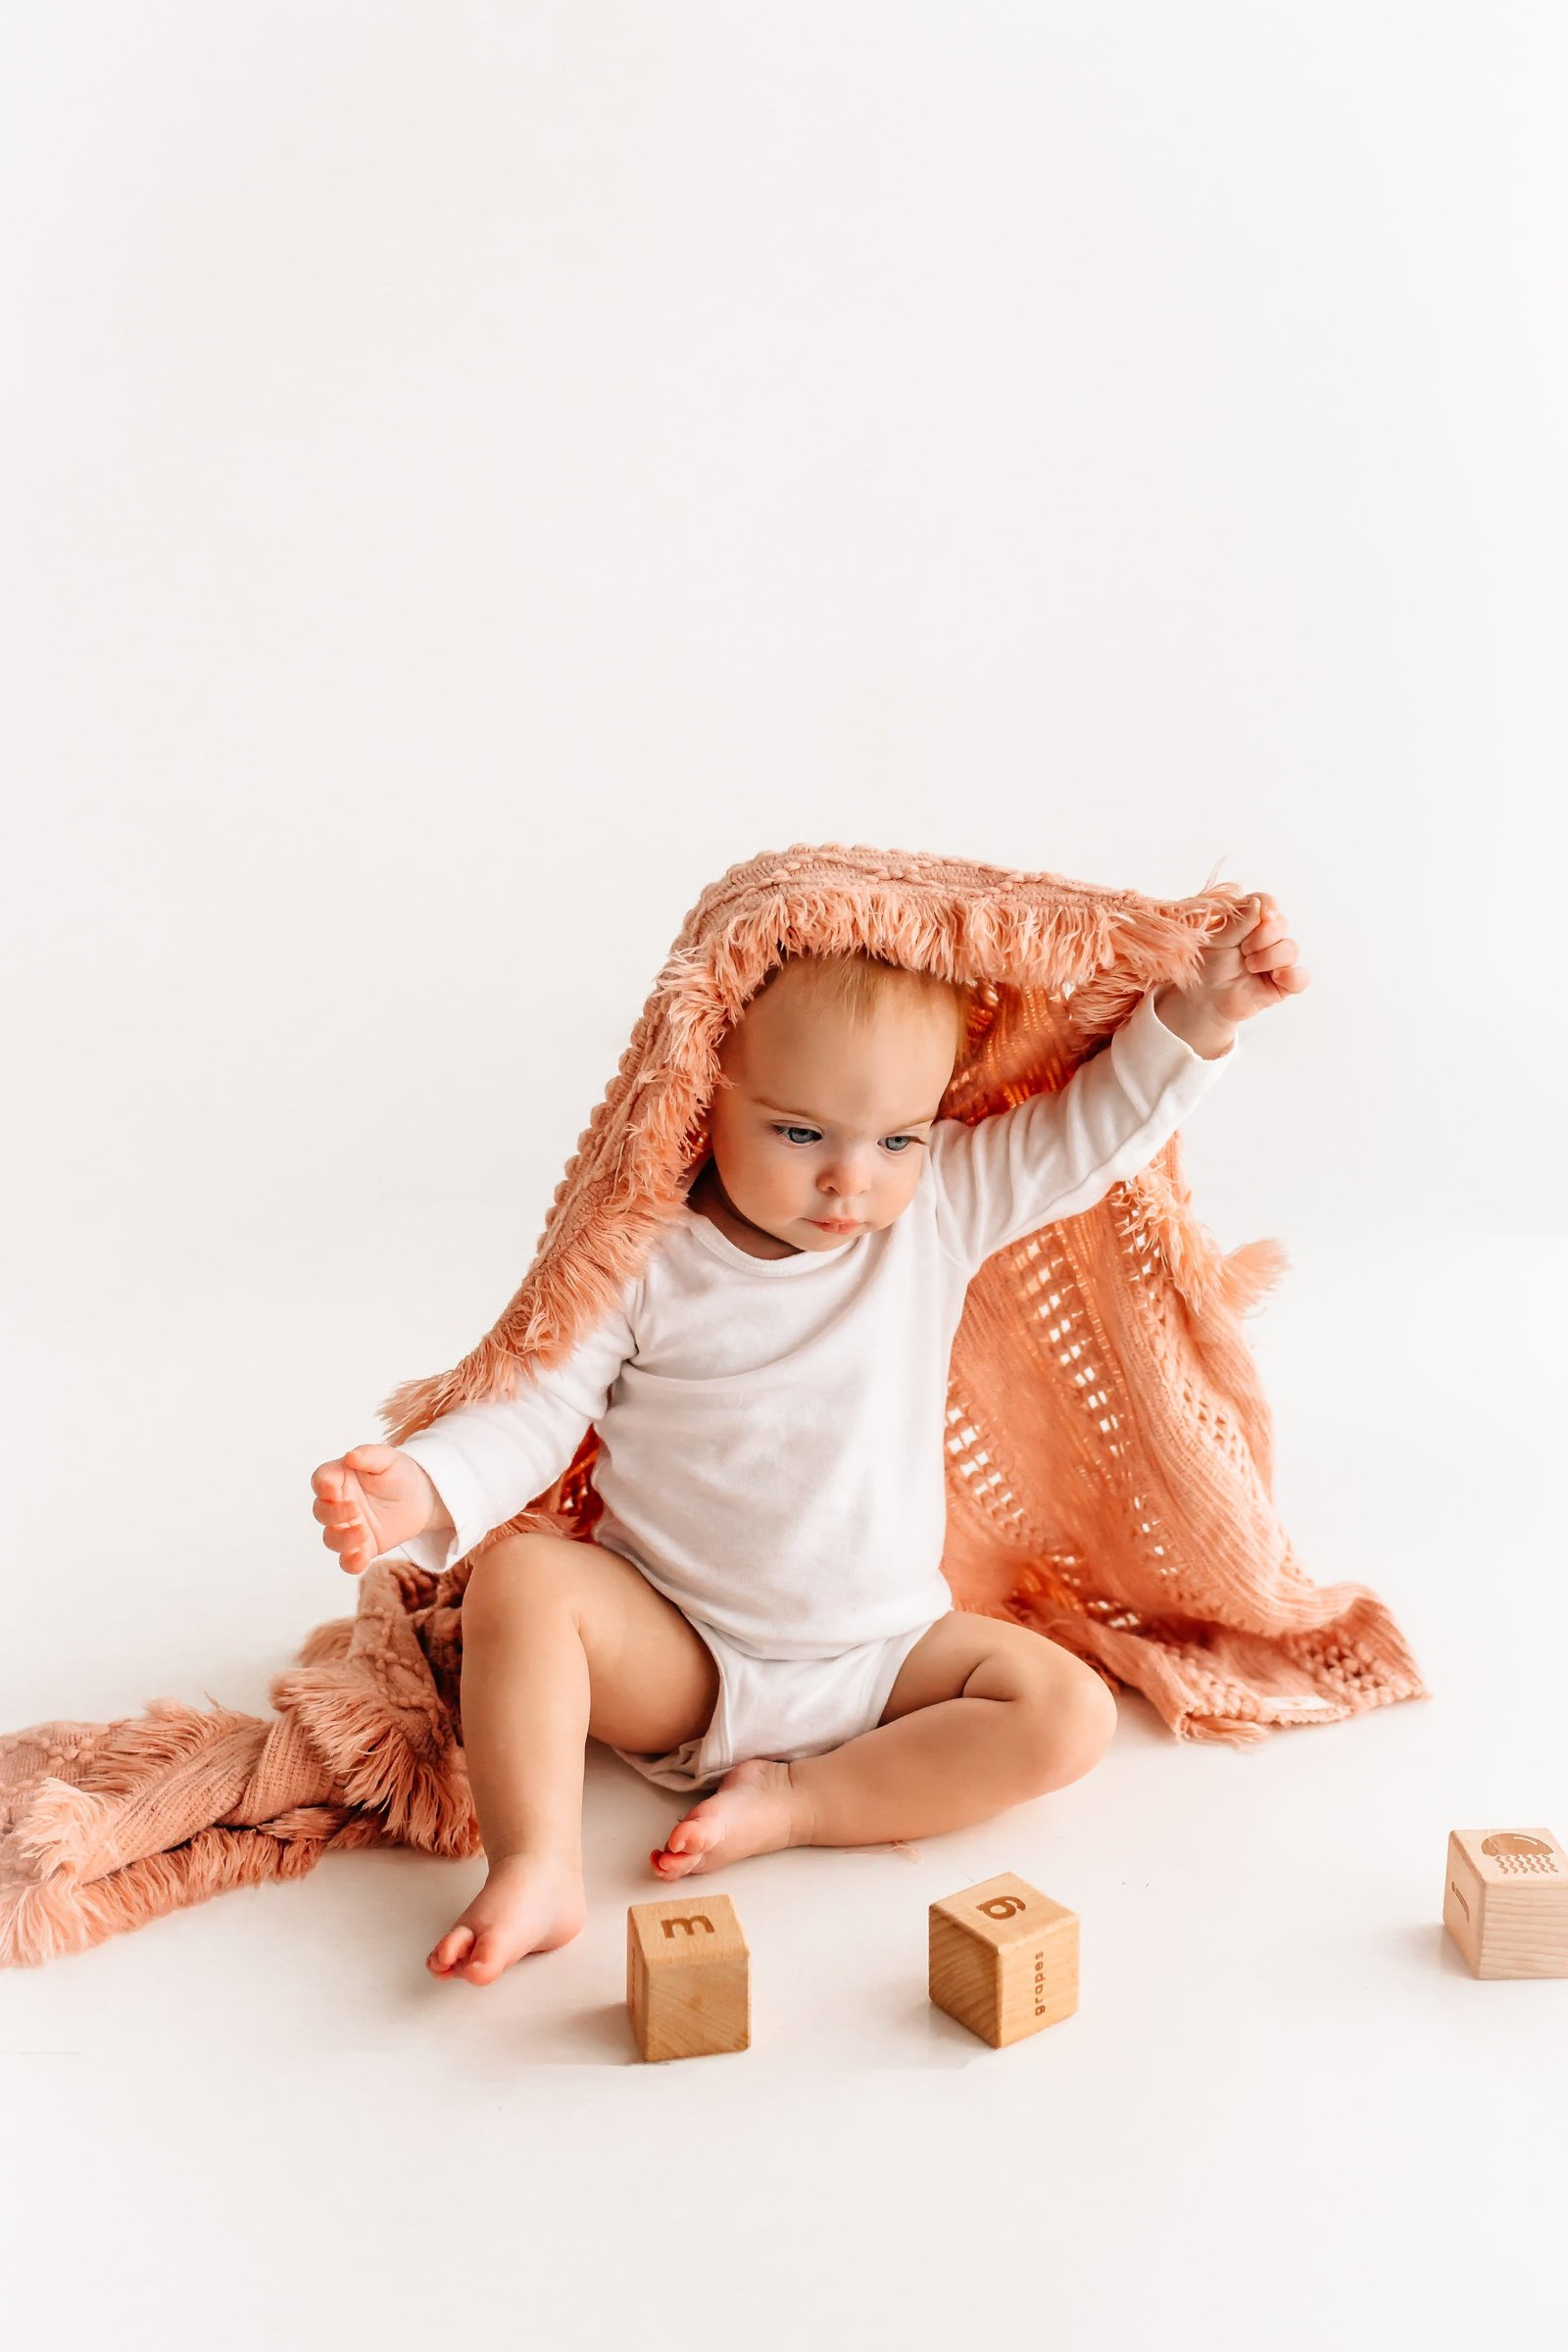 St_Louis_Baby_Photographer_Kelly_Laramore_Photography_60